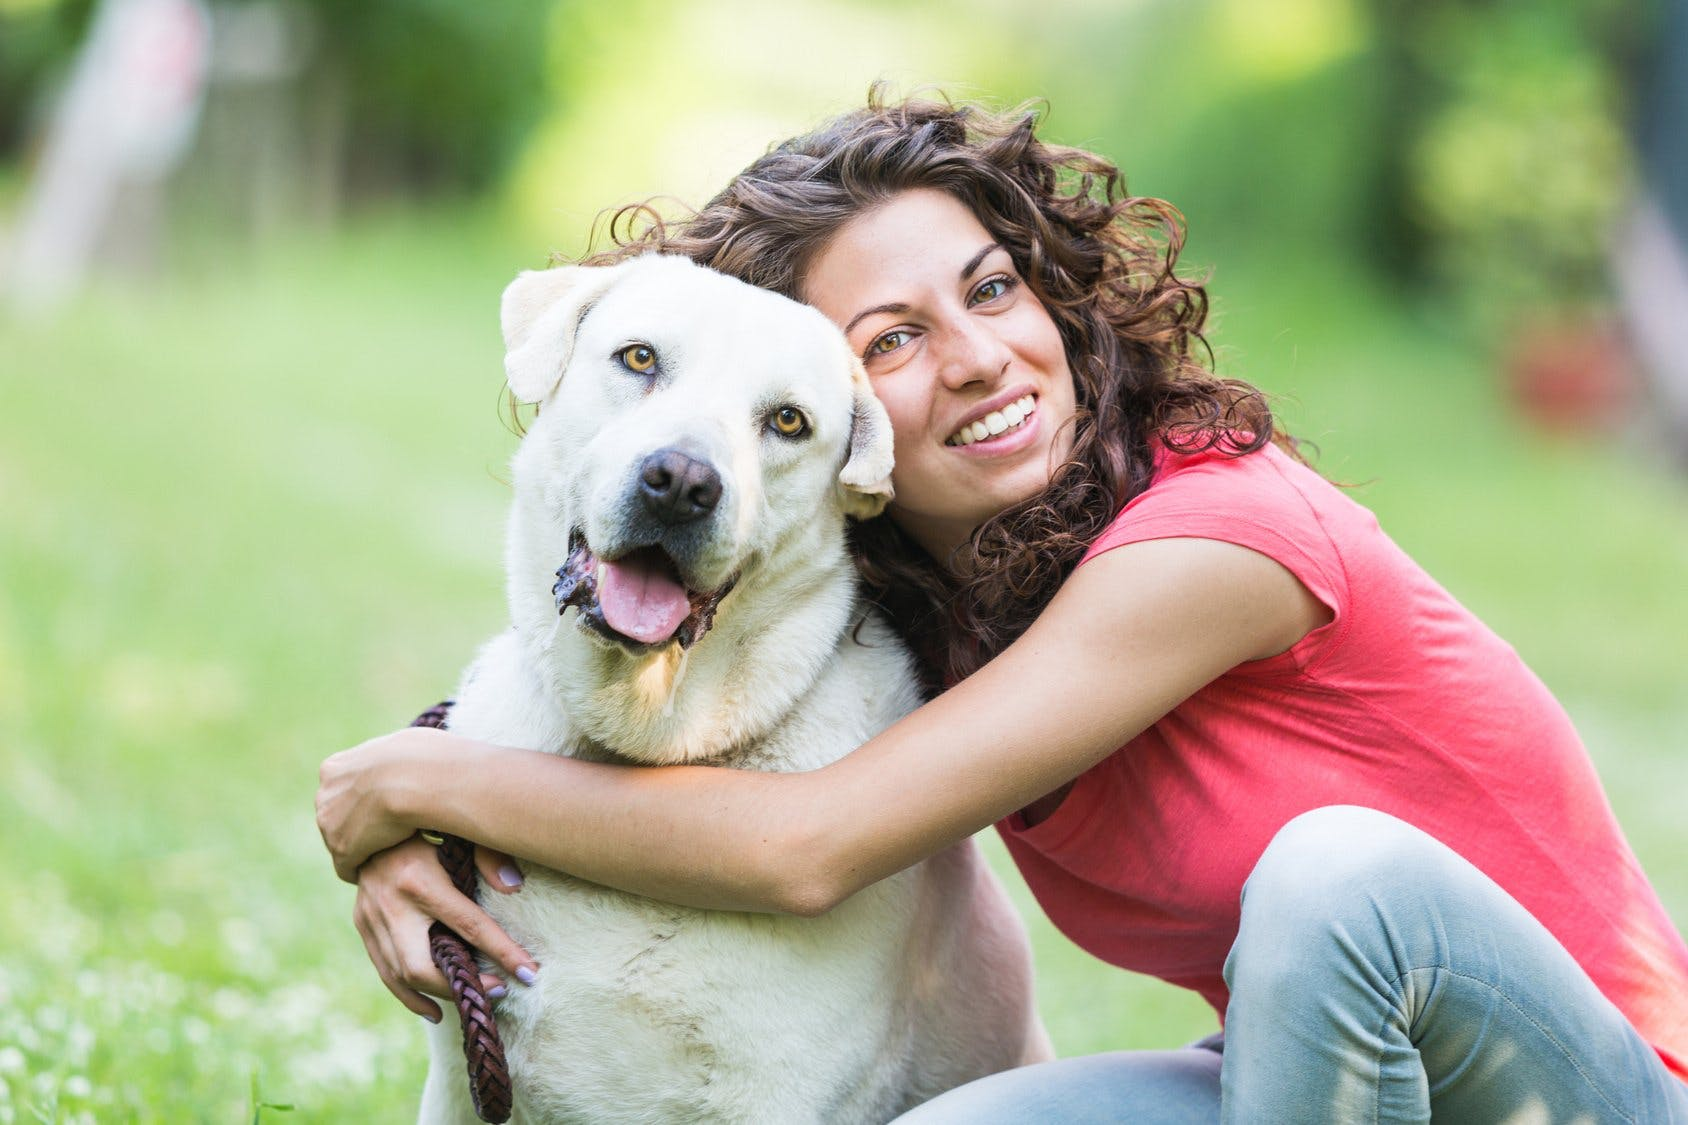 Are You Ready To Commit To A Pet?